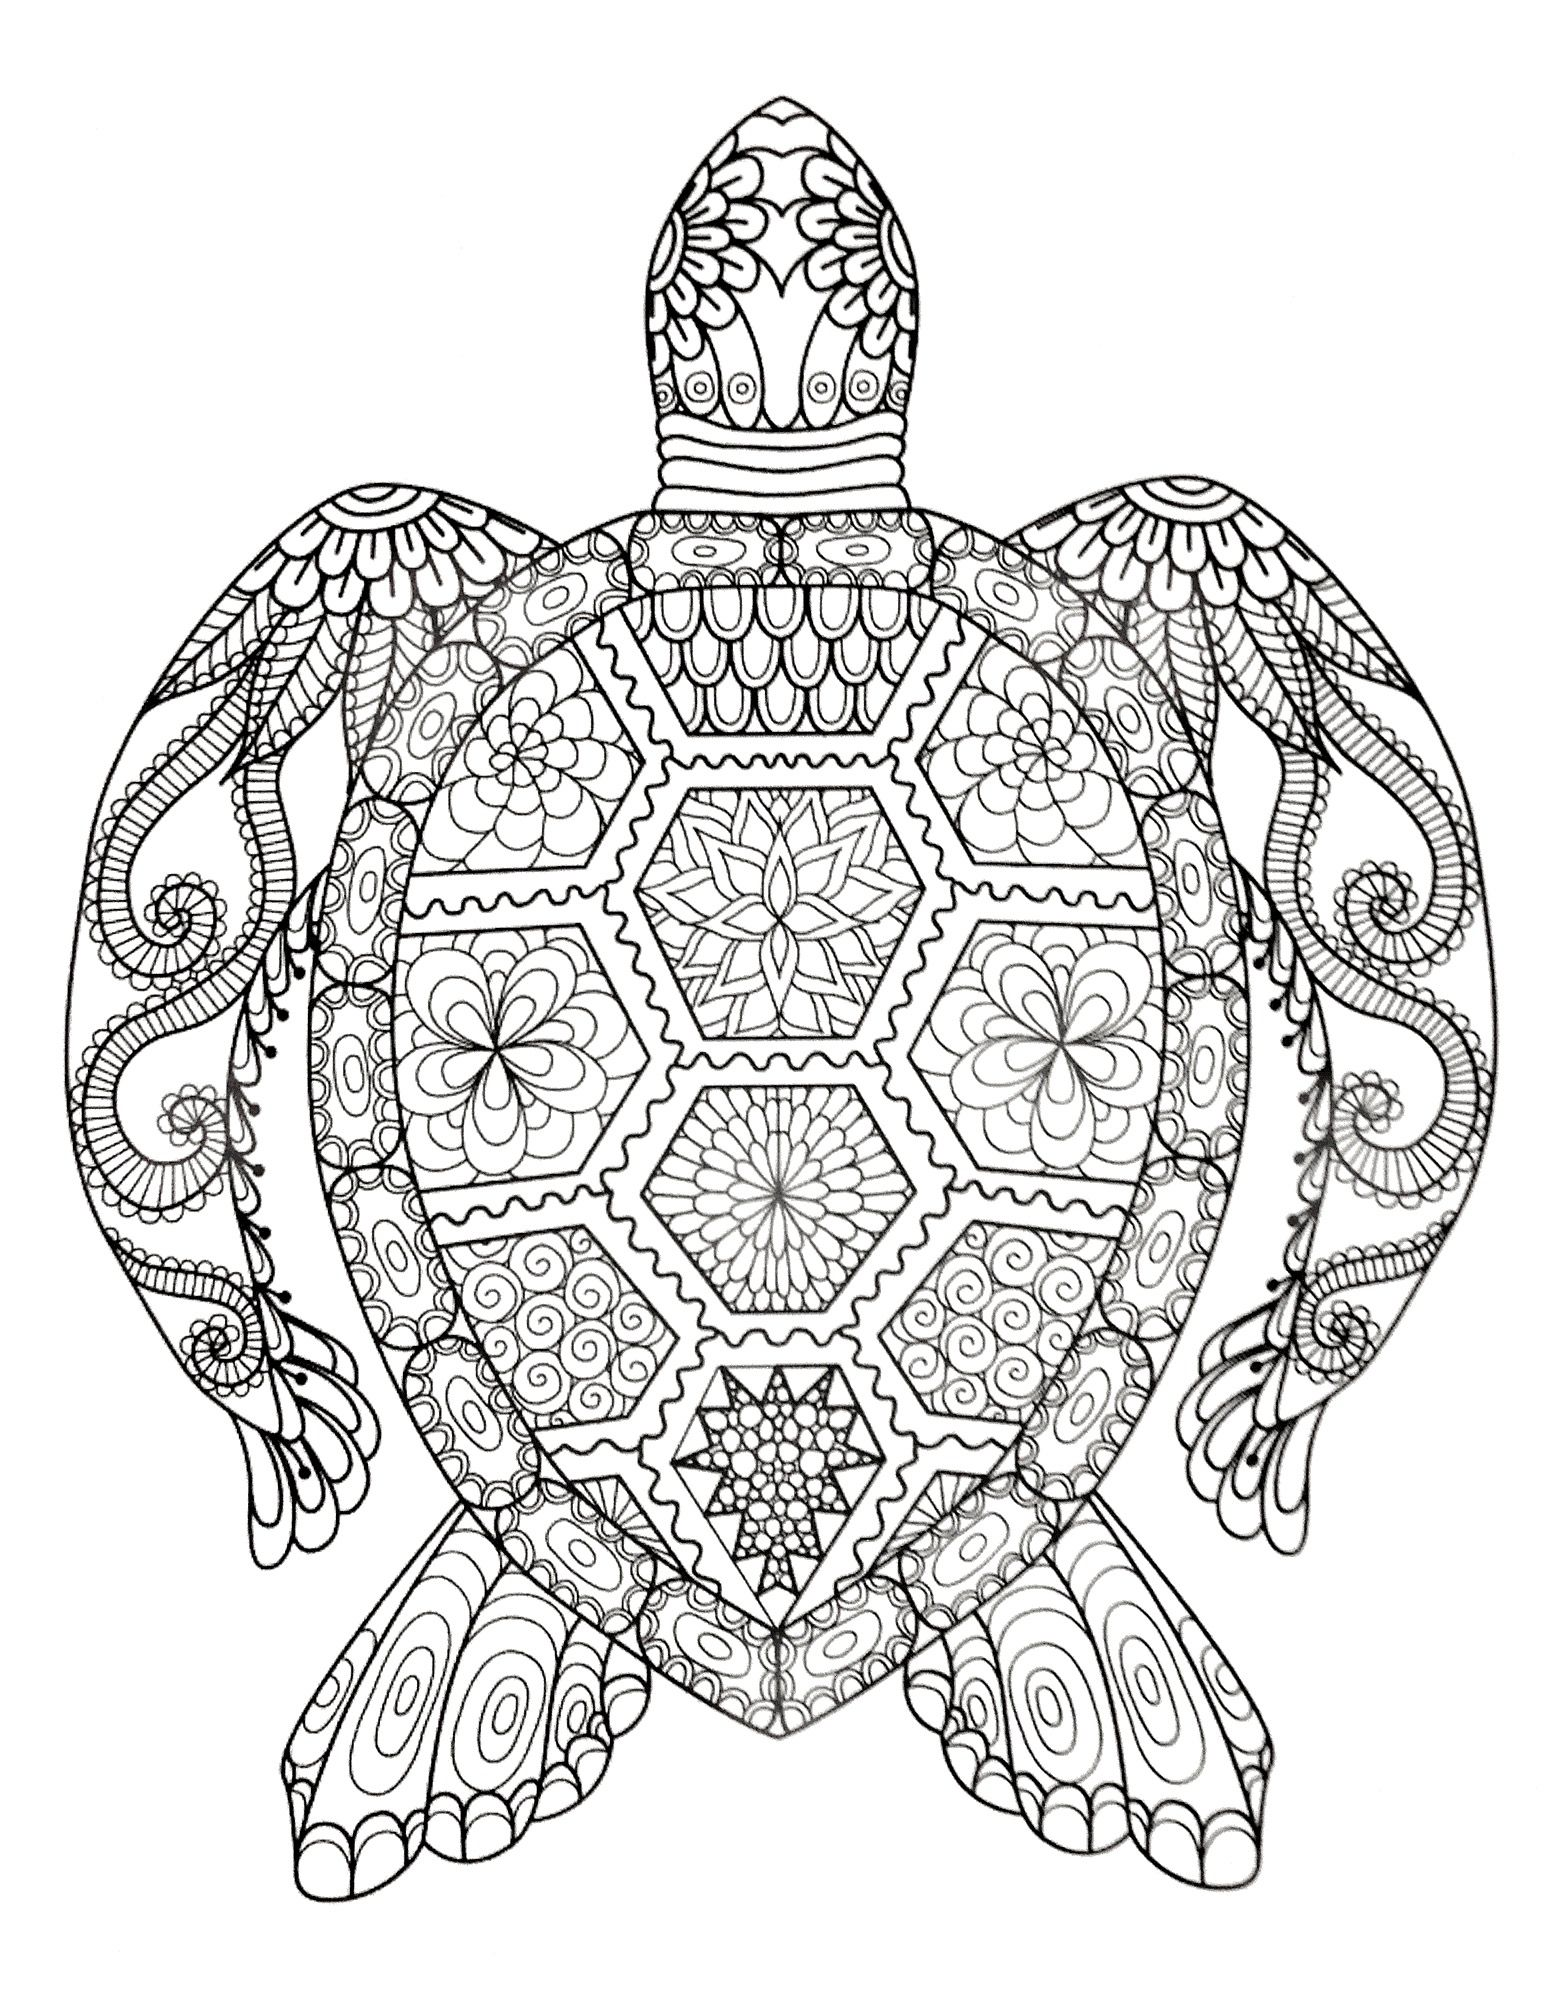 Pin By Michelle Schmidt On Coloring Pages With Images